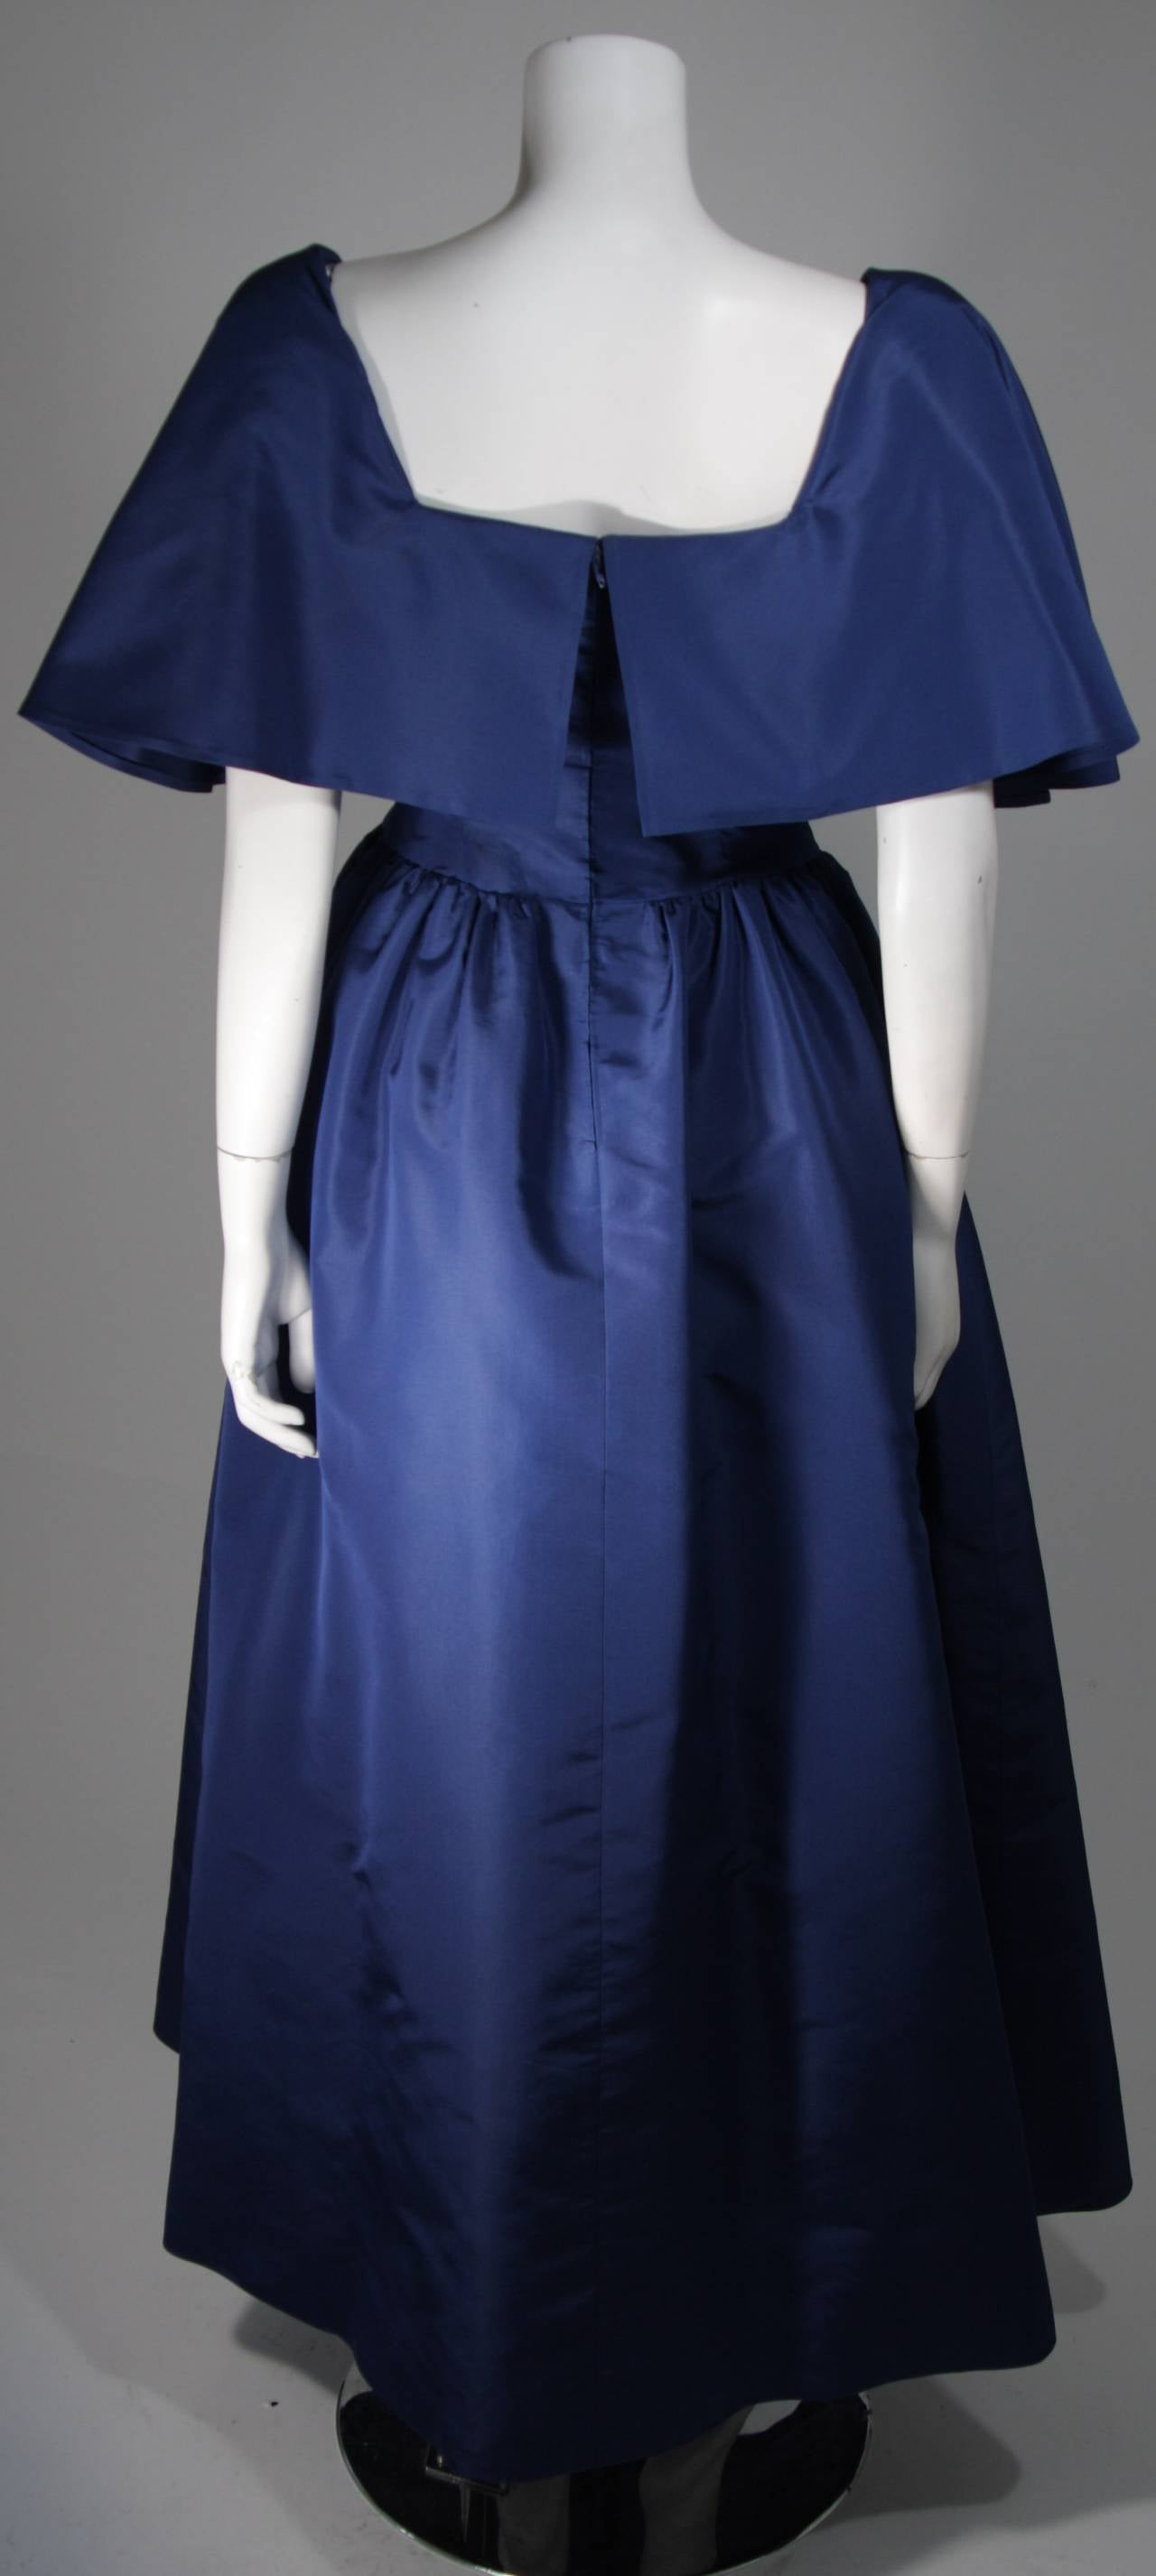 Circa 1980s Pauline Trigere Midnight Blue Faille Ball Gown with Cape Collar 6 6